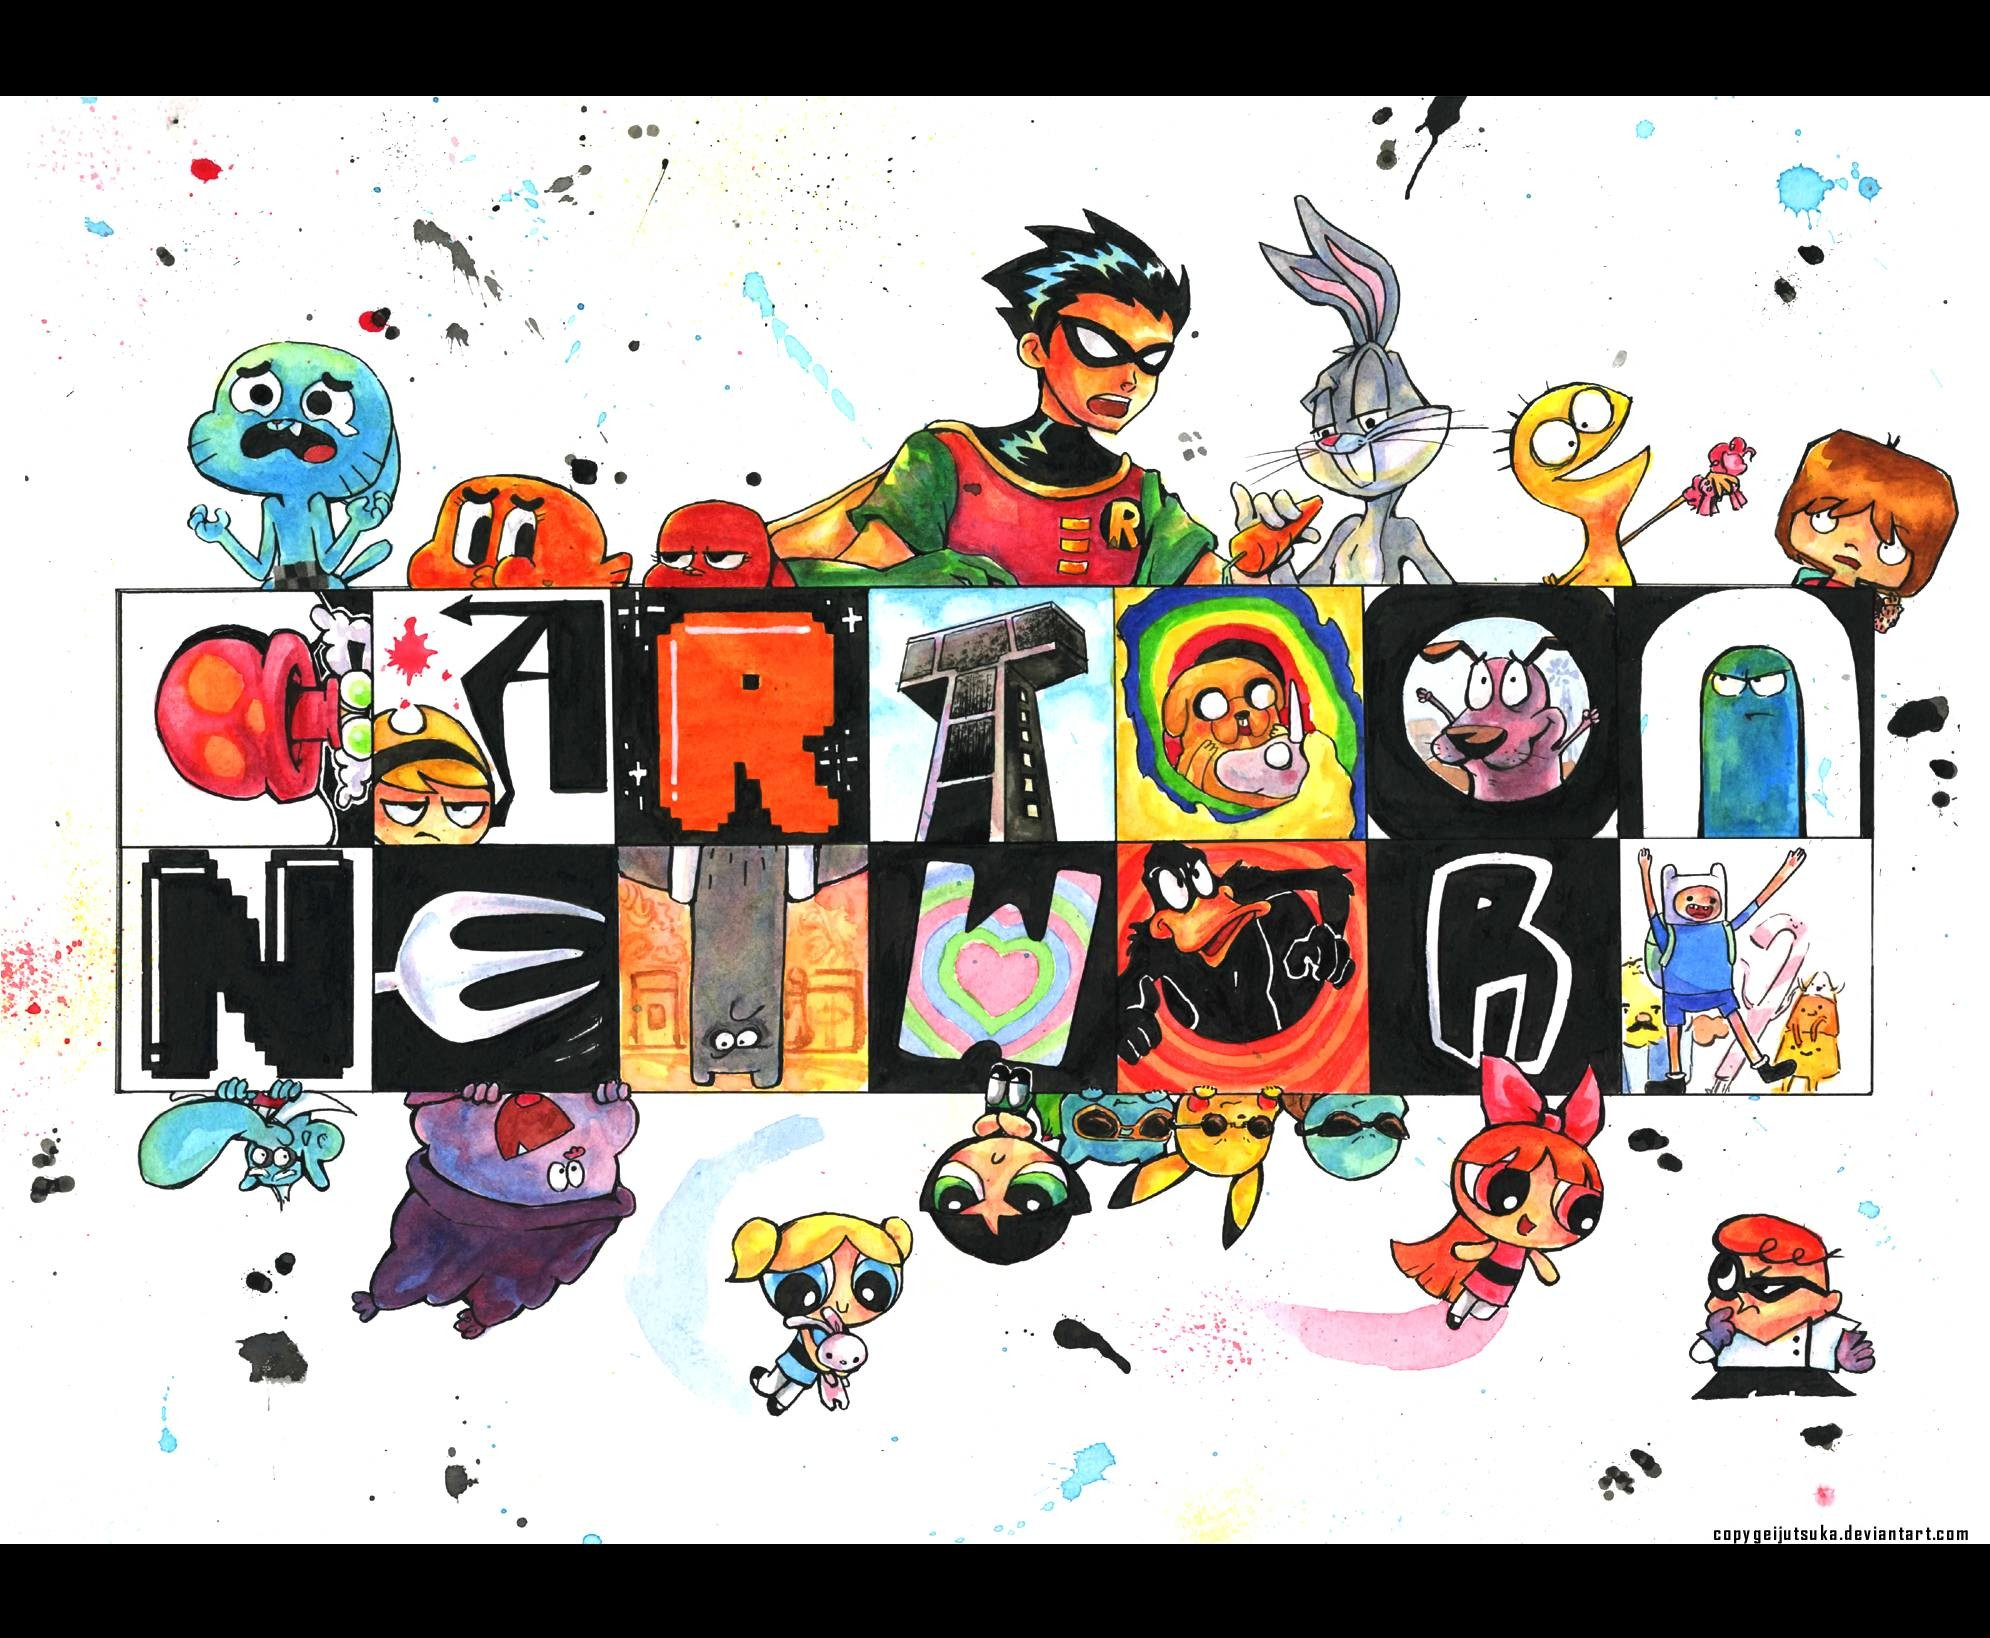 1990x1638 Cartoon Network Images Images 6 HD Wallpapers | lzamgs.